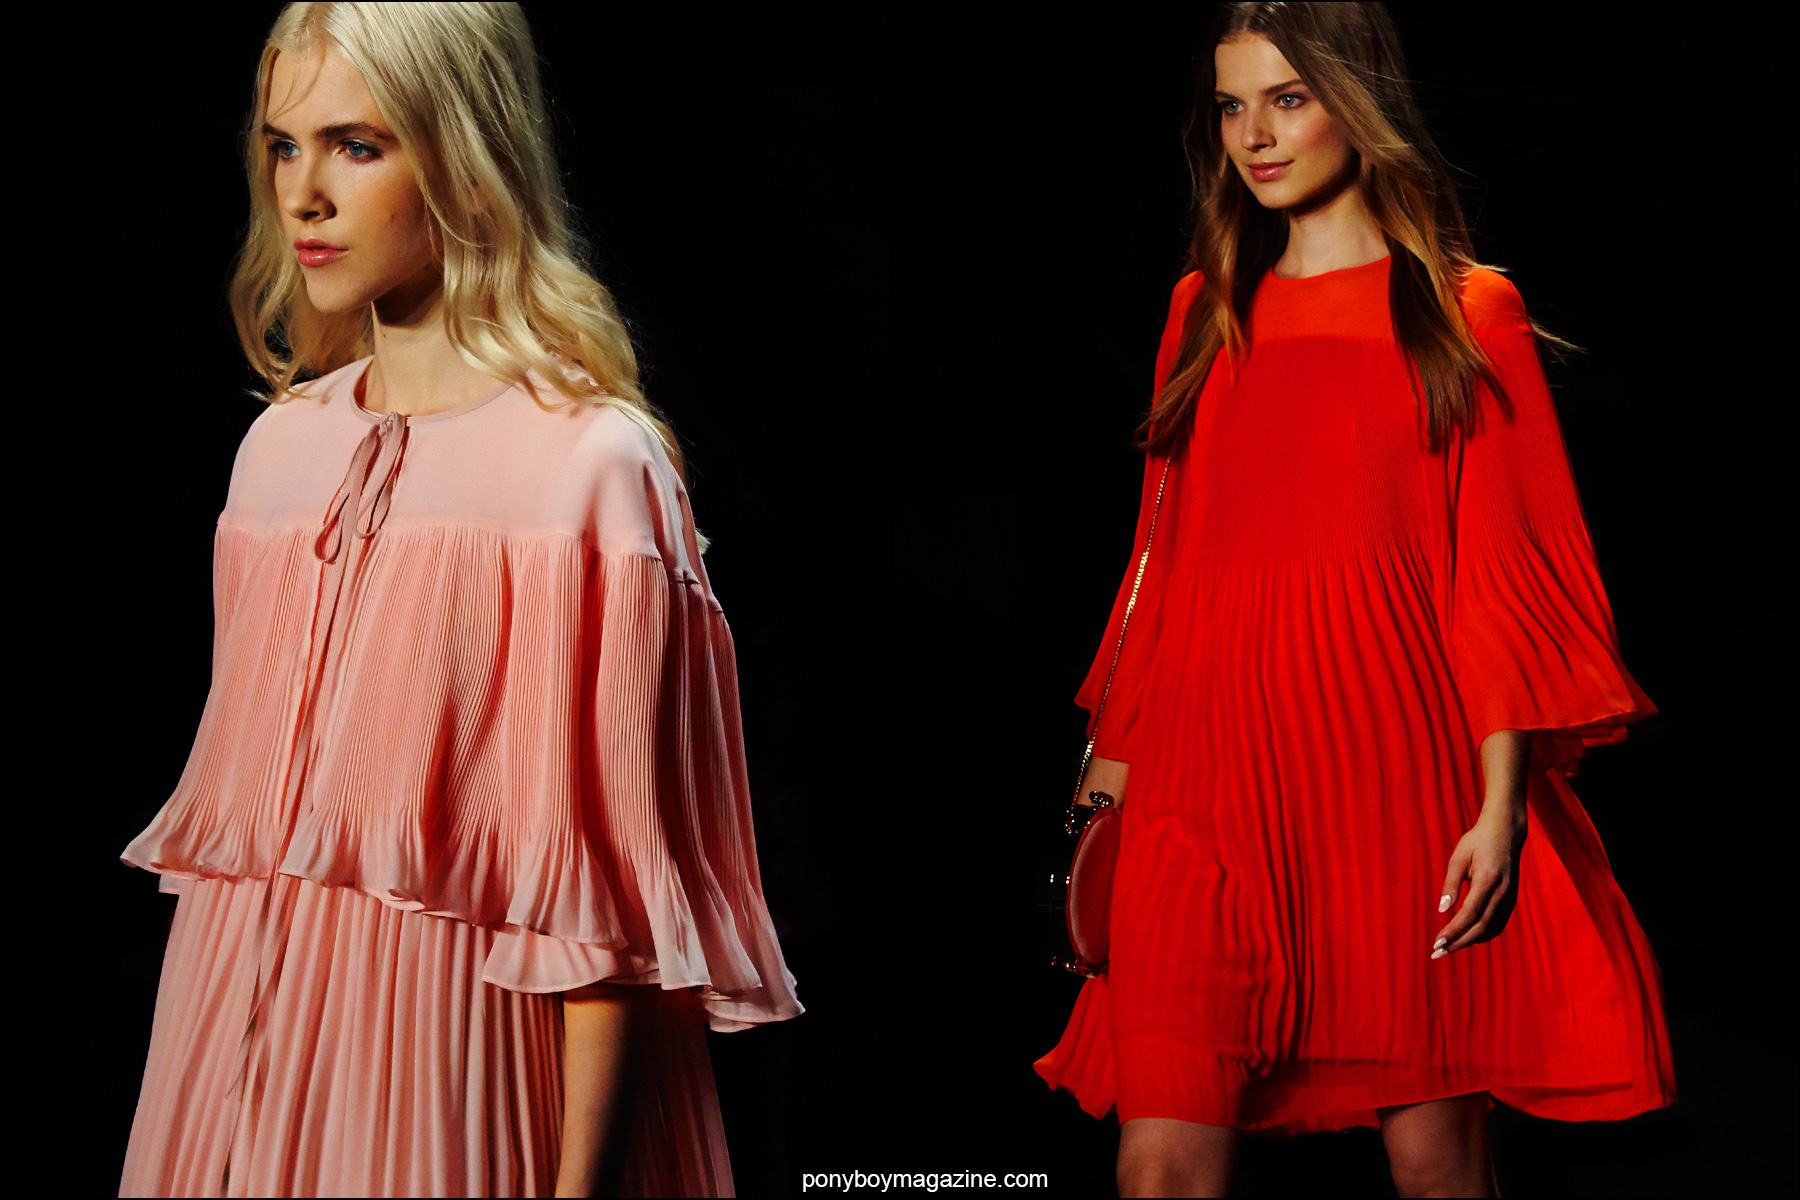 Models in pleated chiffon dresses on the runway at Erin Fetherston S/S16. Photographs by Alexander Thompson for Ponyboy magazine NY.